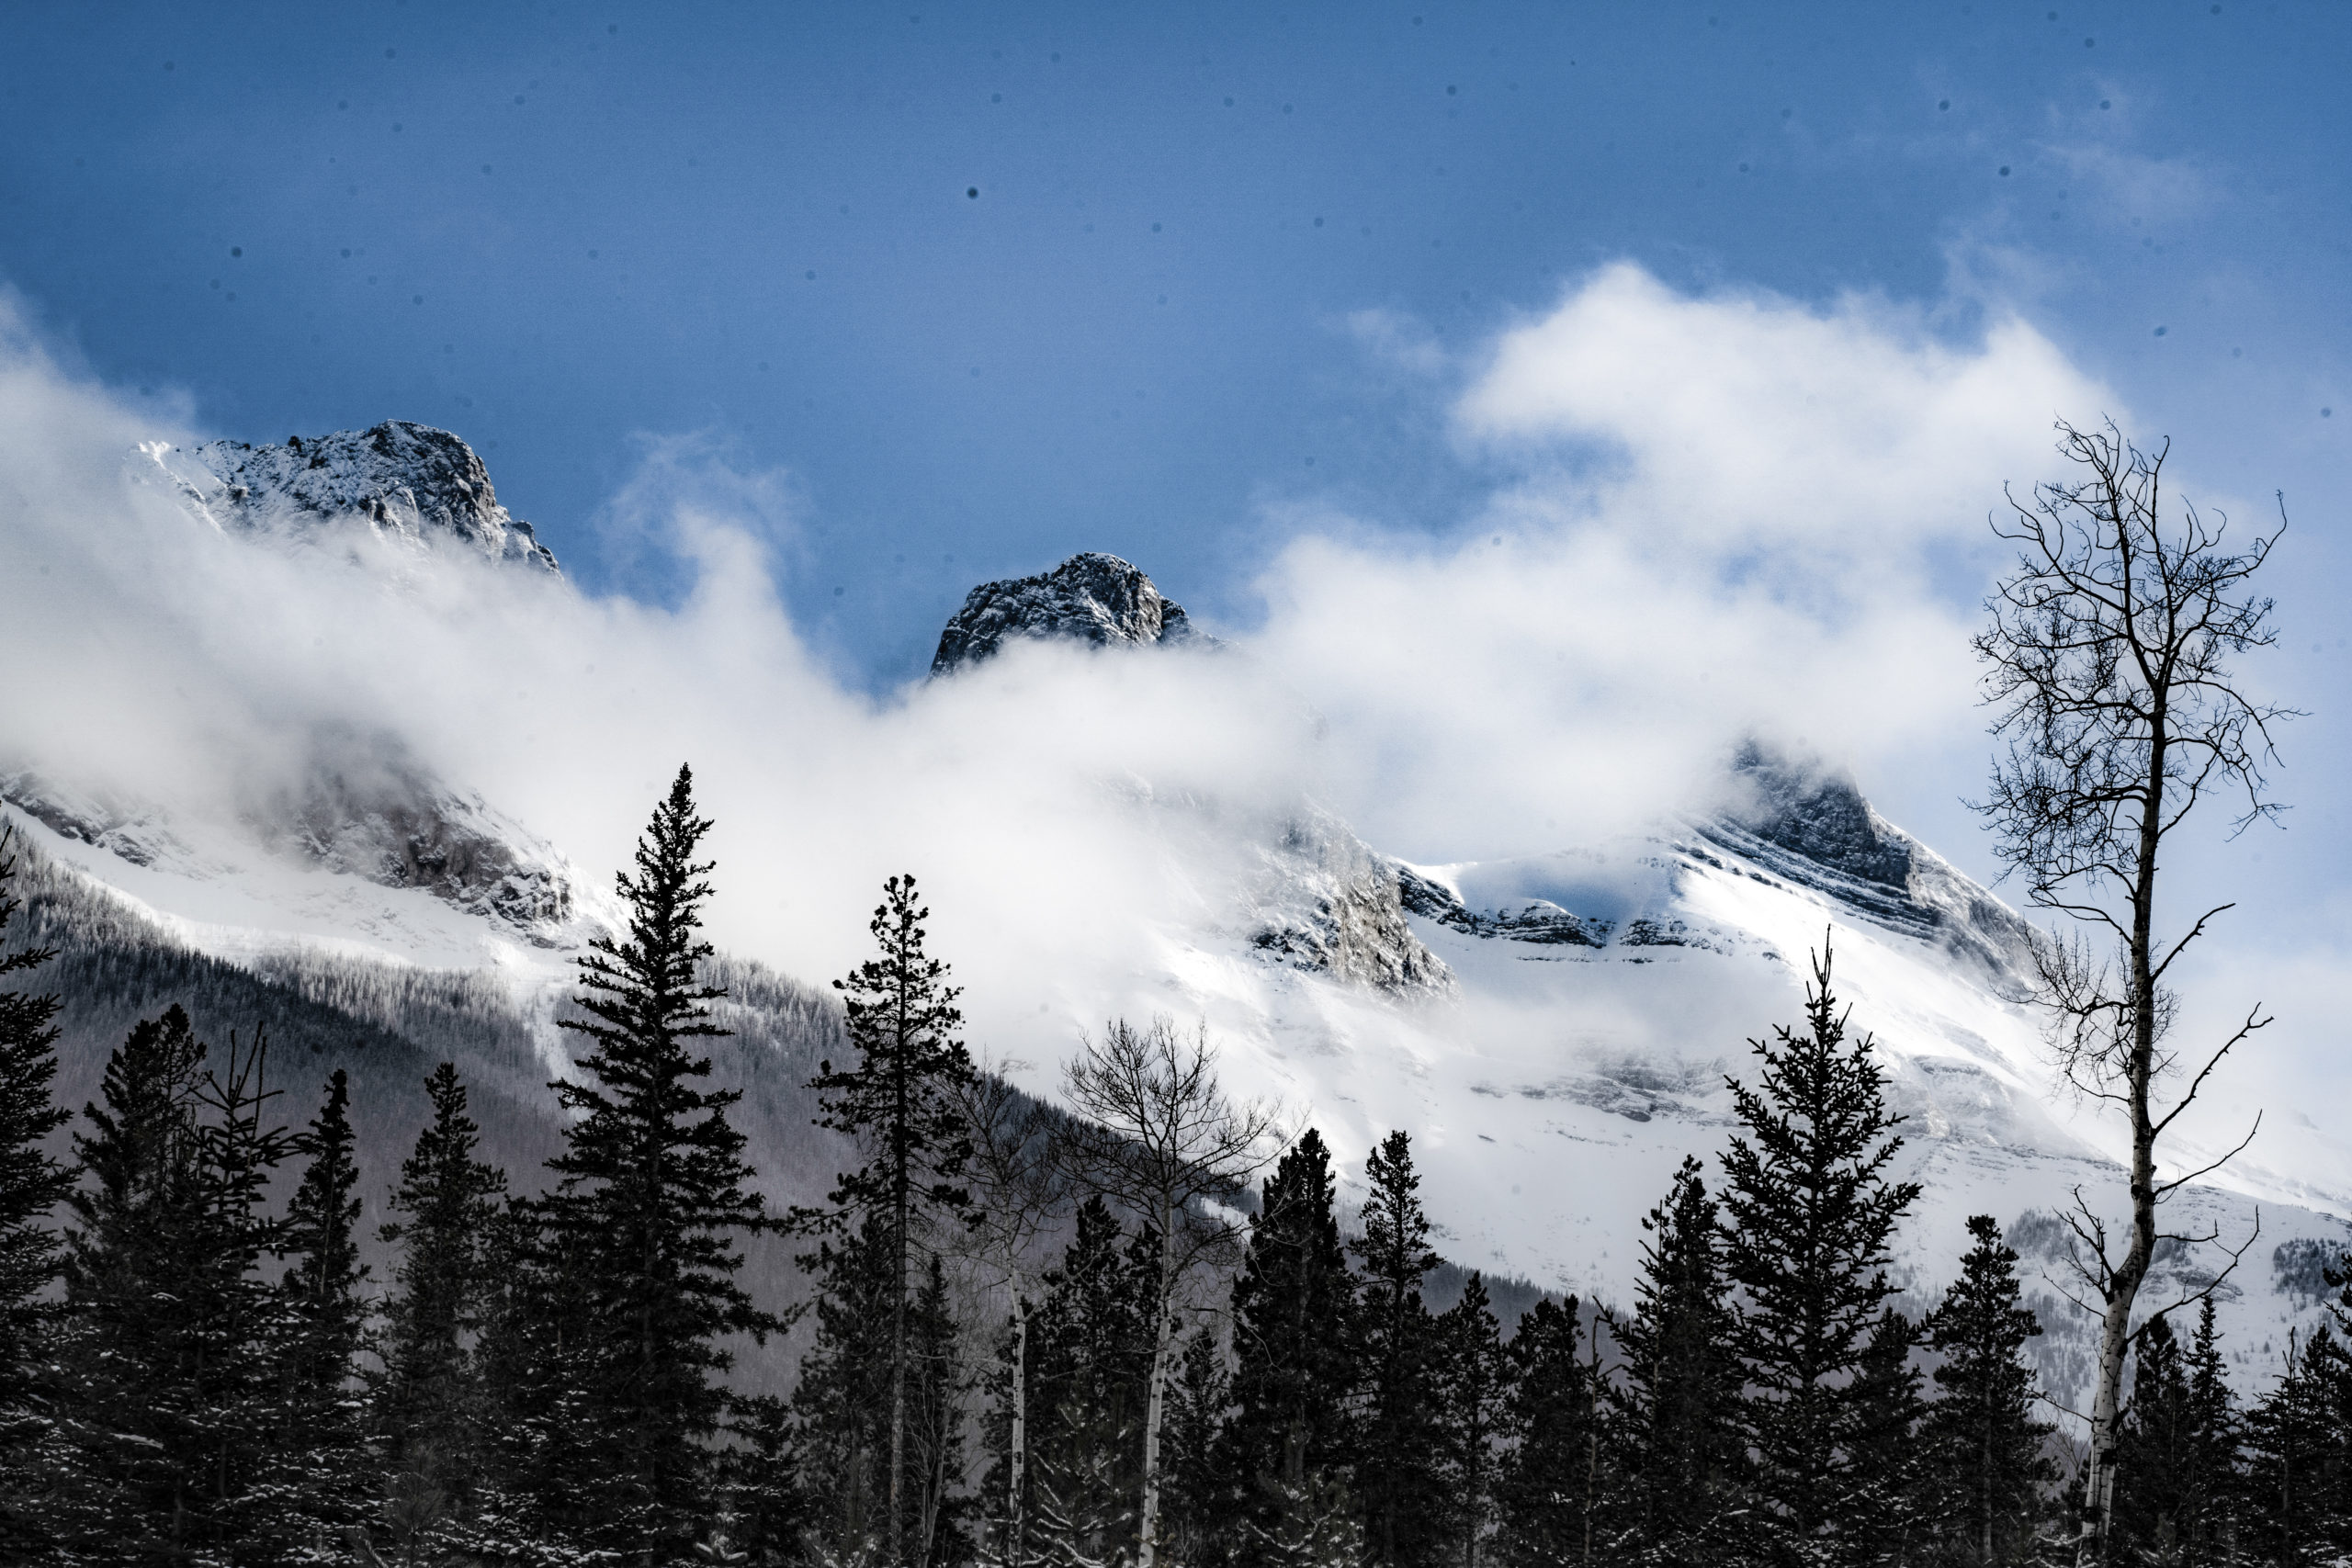 montagnes_paysage_neige_hiver_canada_banff_alberta_canmore